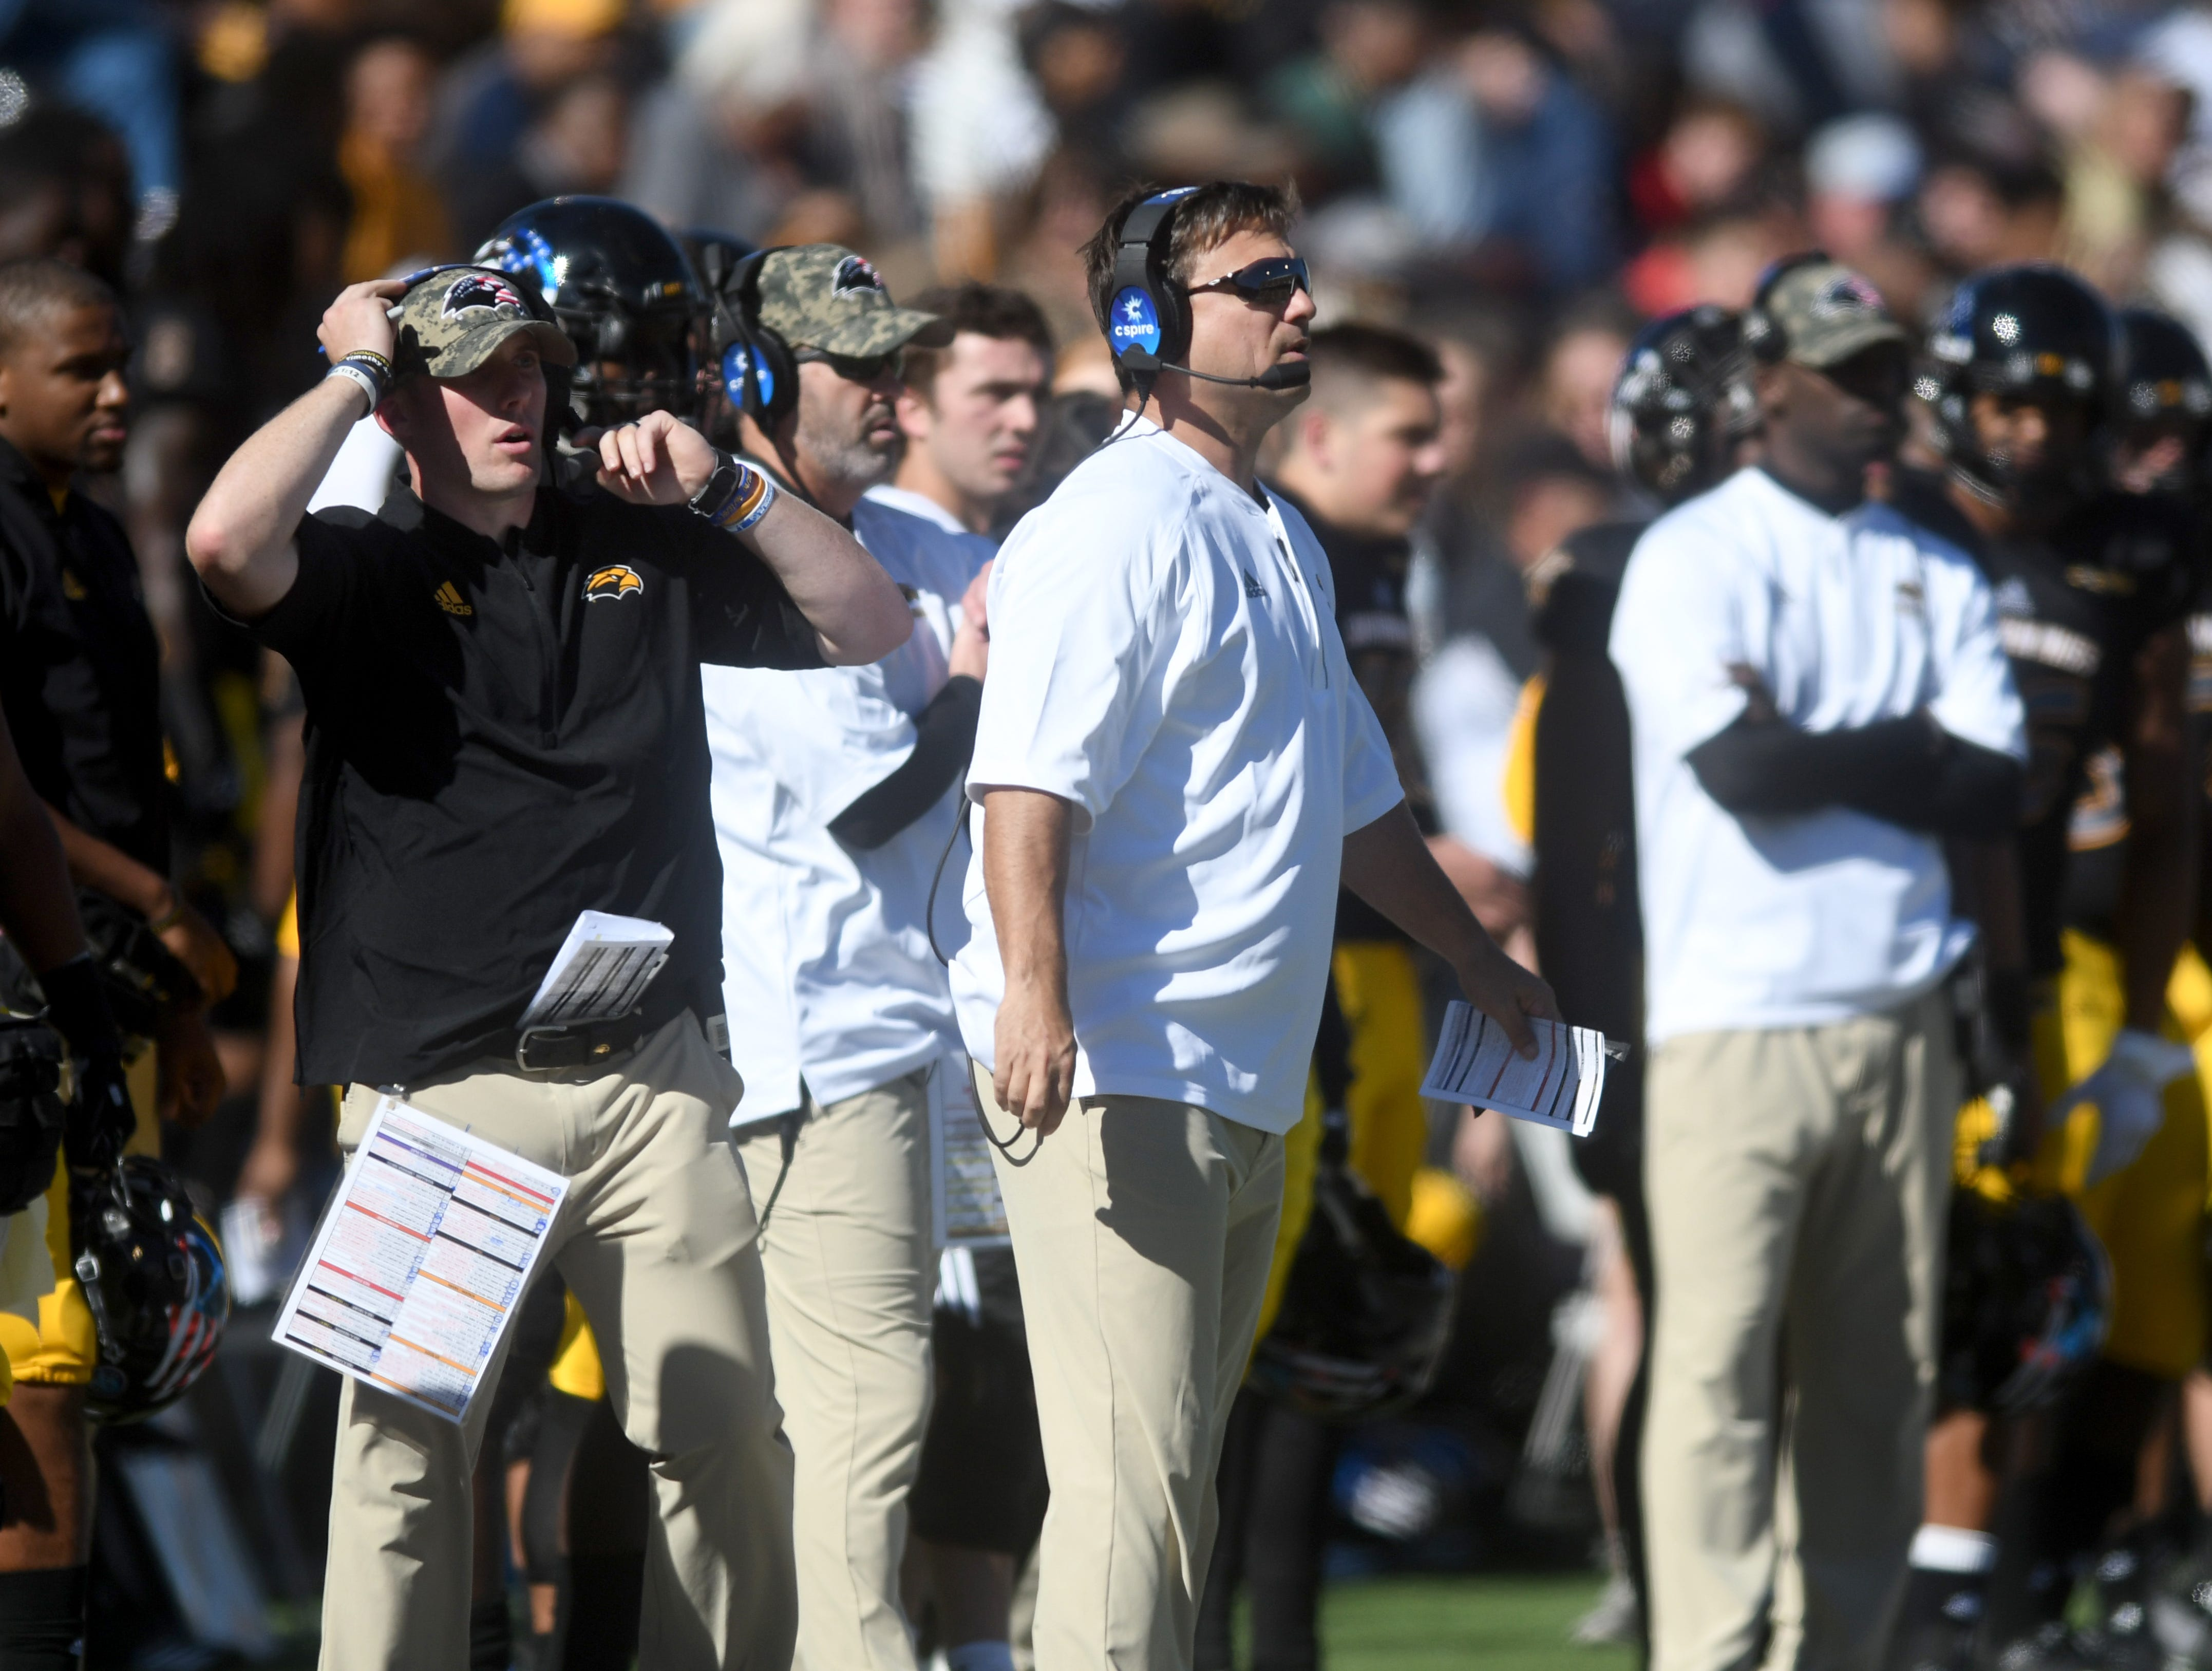 Southern Miss offensive coordinator Shannon Dawson watches from the sideline in a game against Marshall at M.M. Roberts Stadium on Saturday, November 3, 2018.